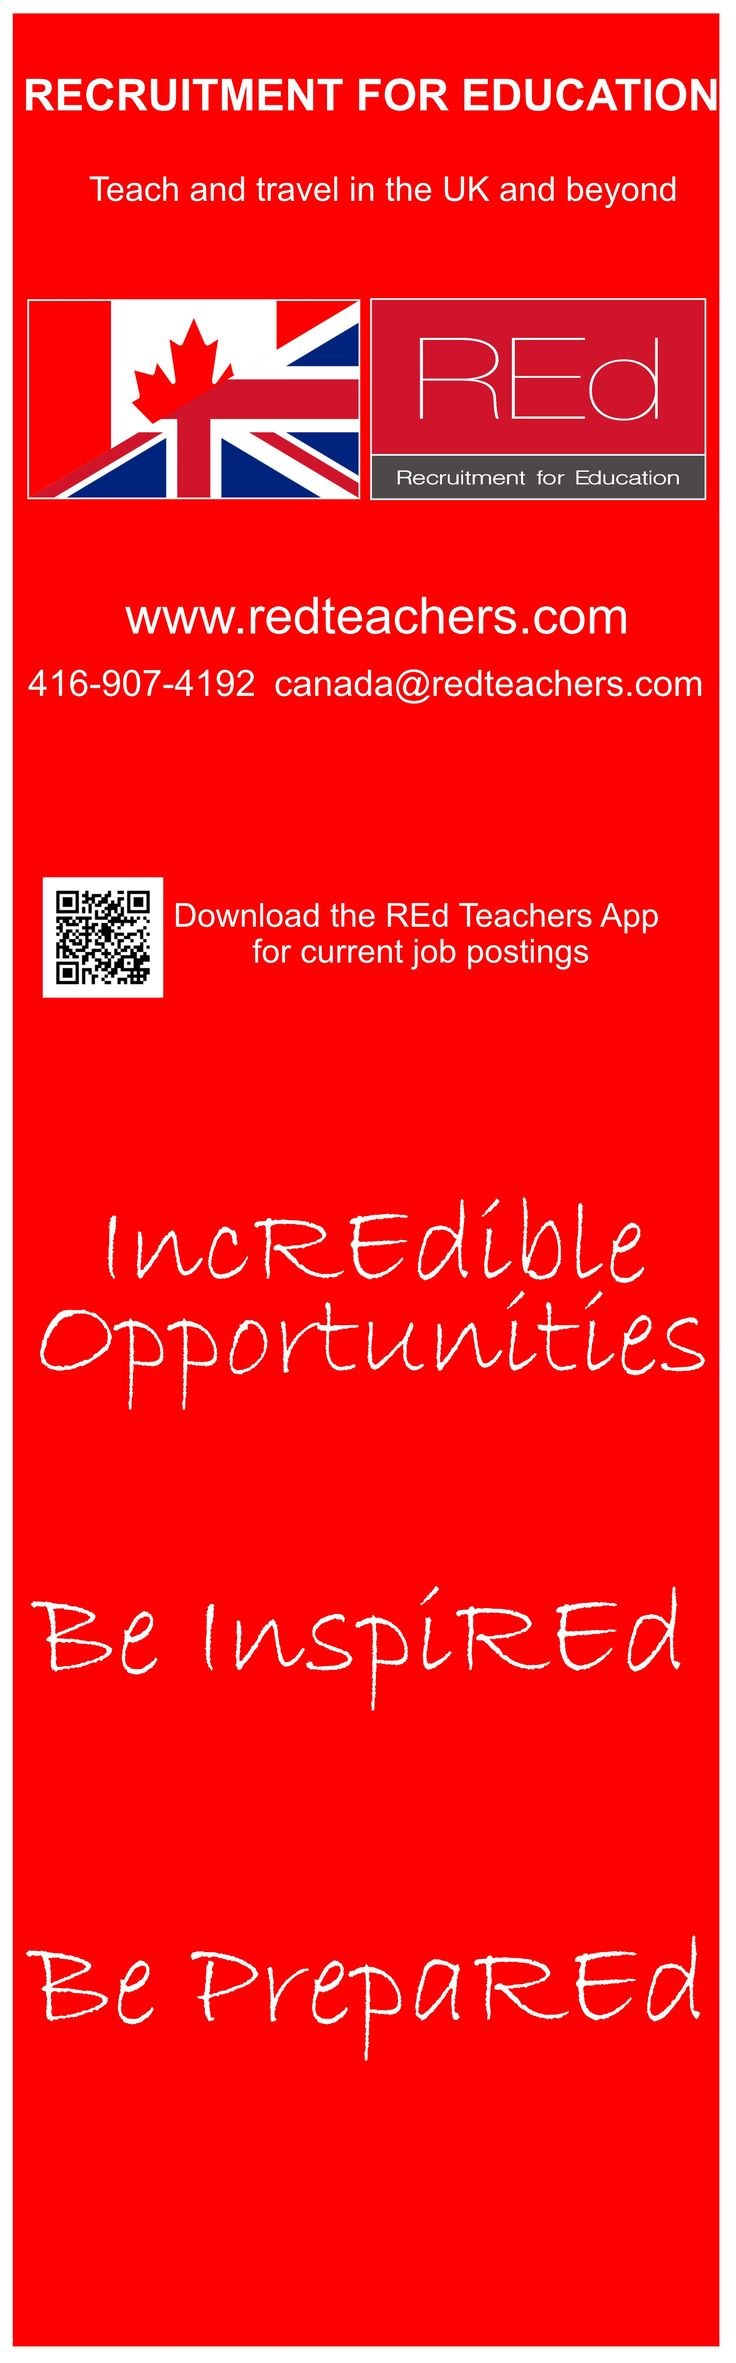 Want to teach in the UK? Contact REd Teachers today and register on our website! www.redteachers.com